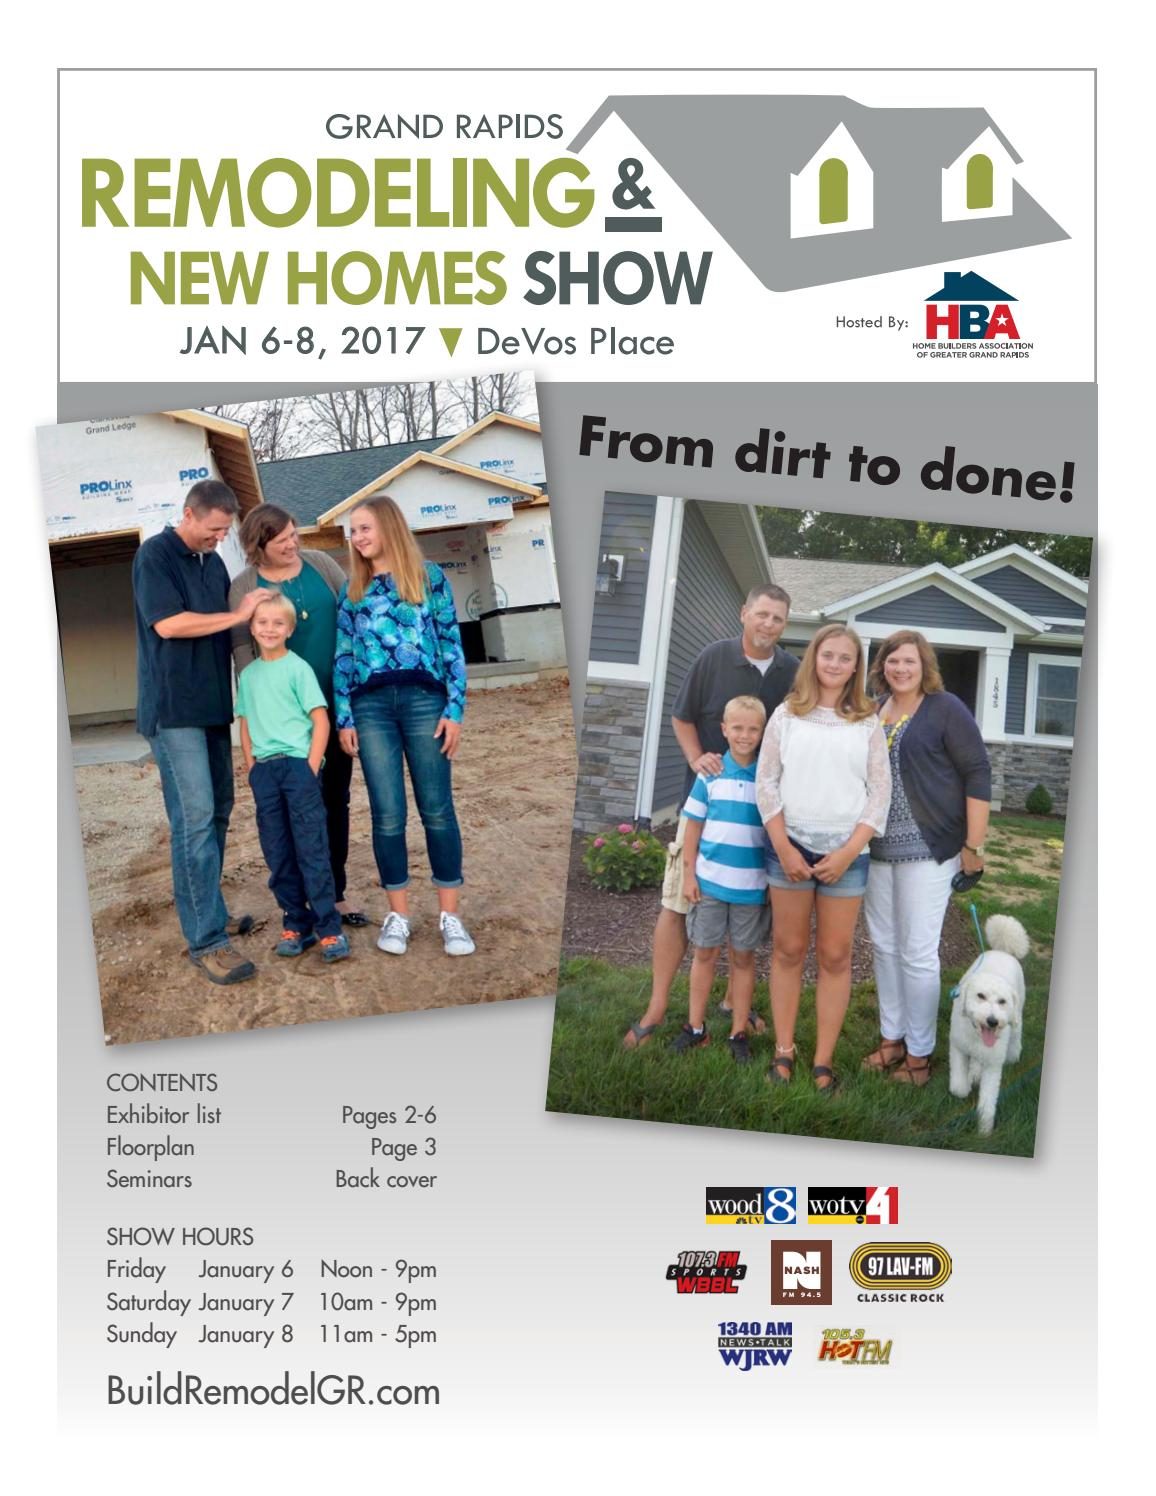 Grand rapids remodeling new homes show 2017 show program - Home and garden show 2017 grand rapids ...